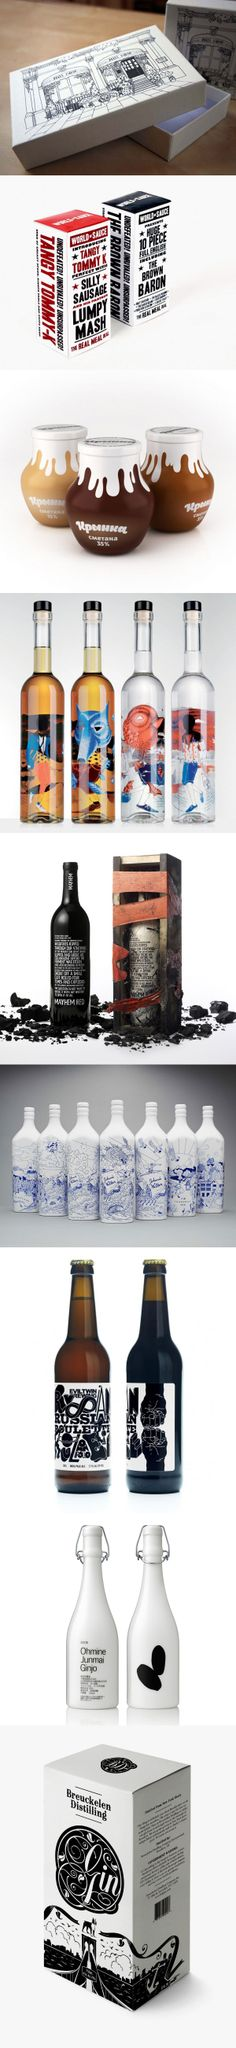 collection inspiration packaging #packaging #design #inspiration